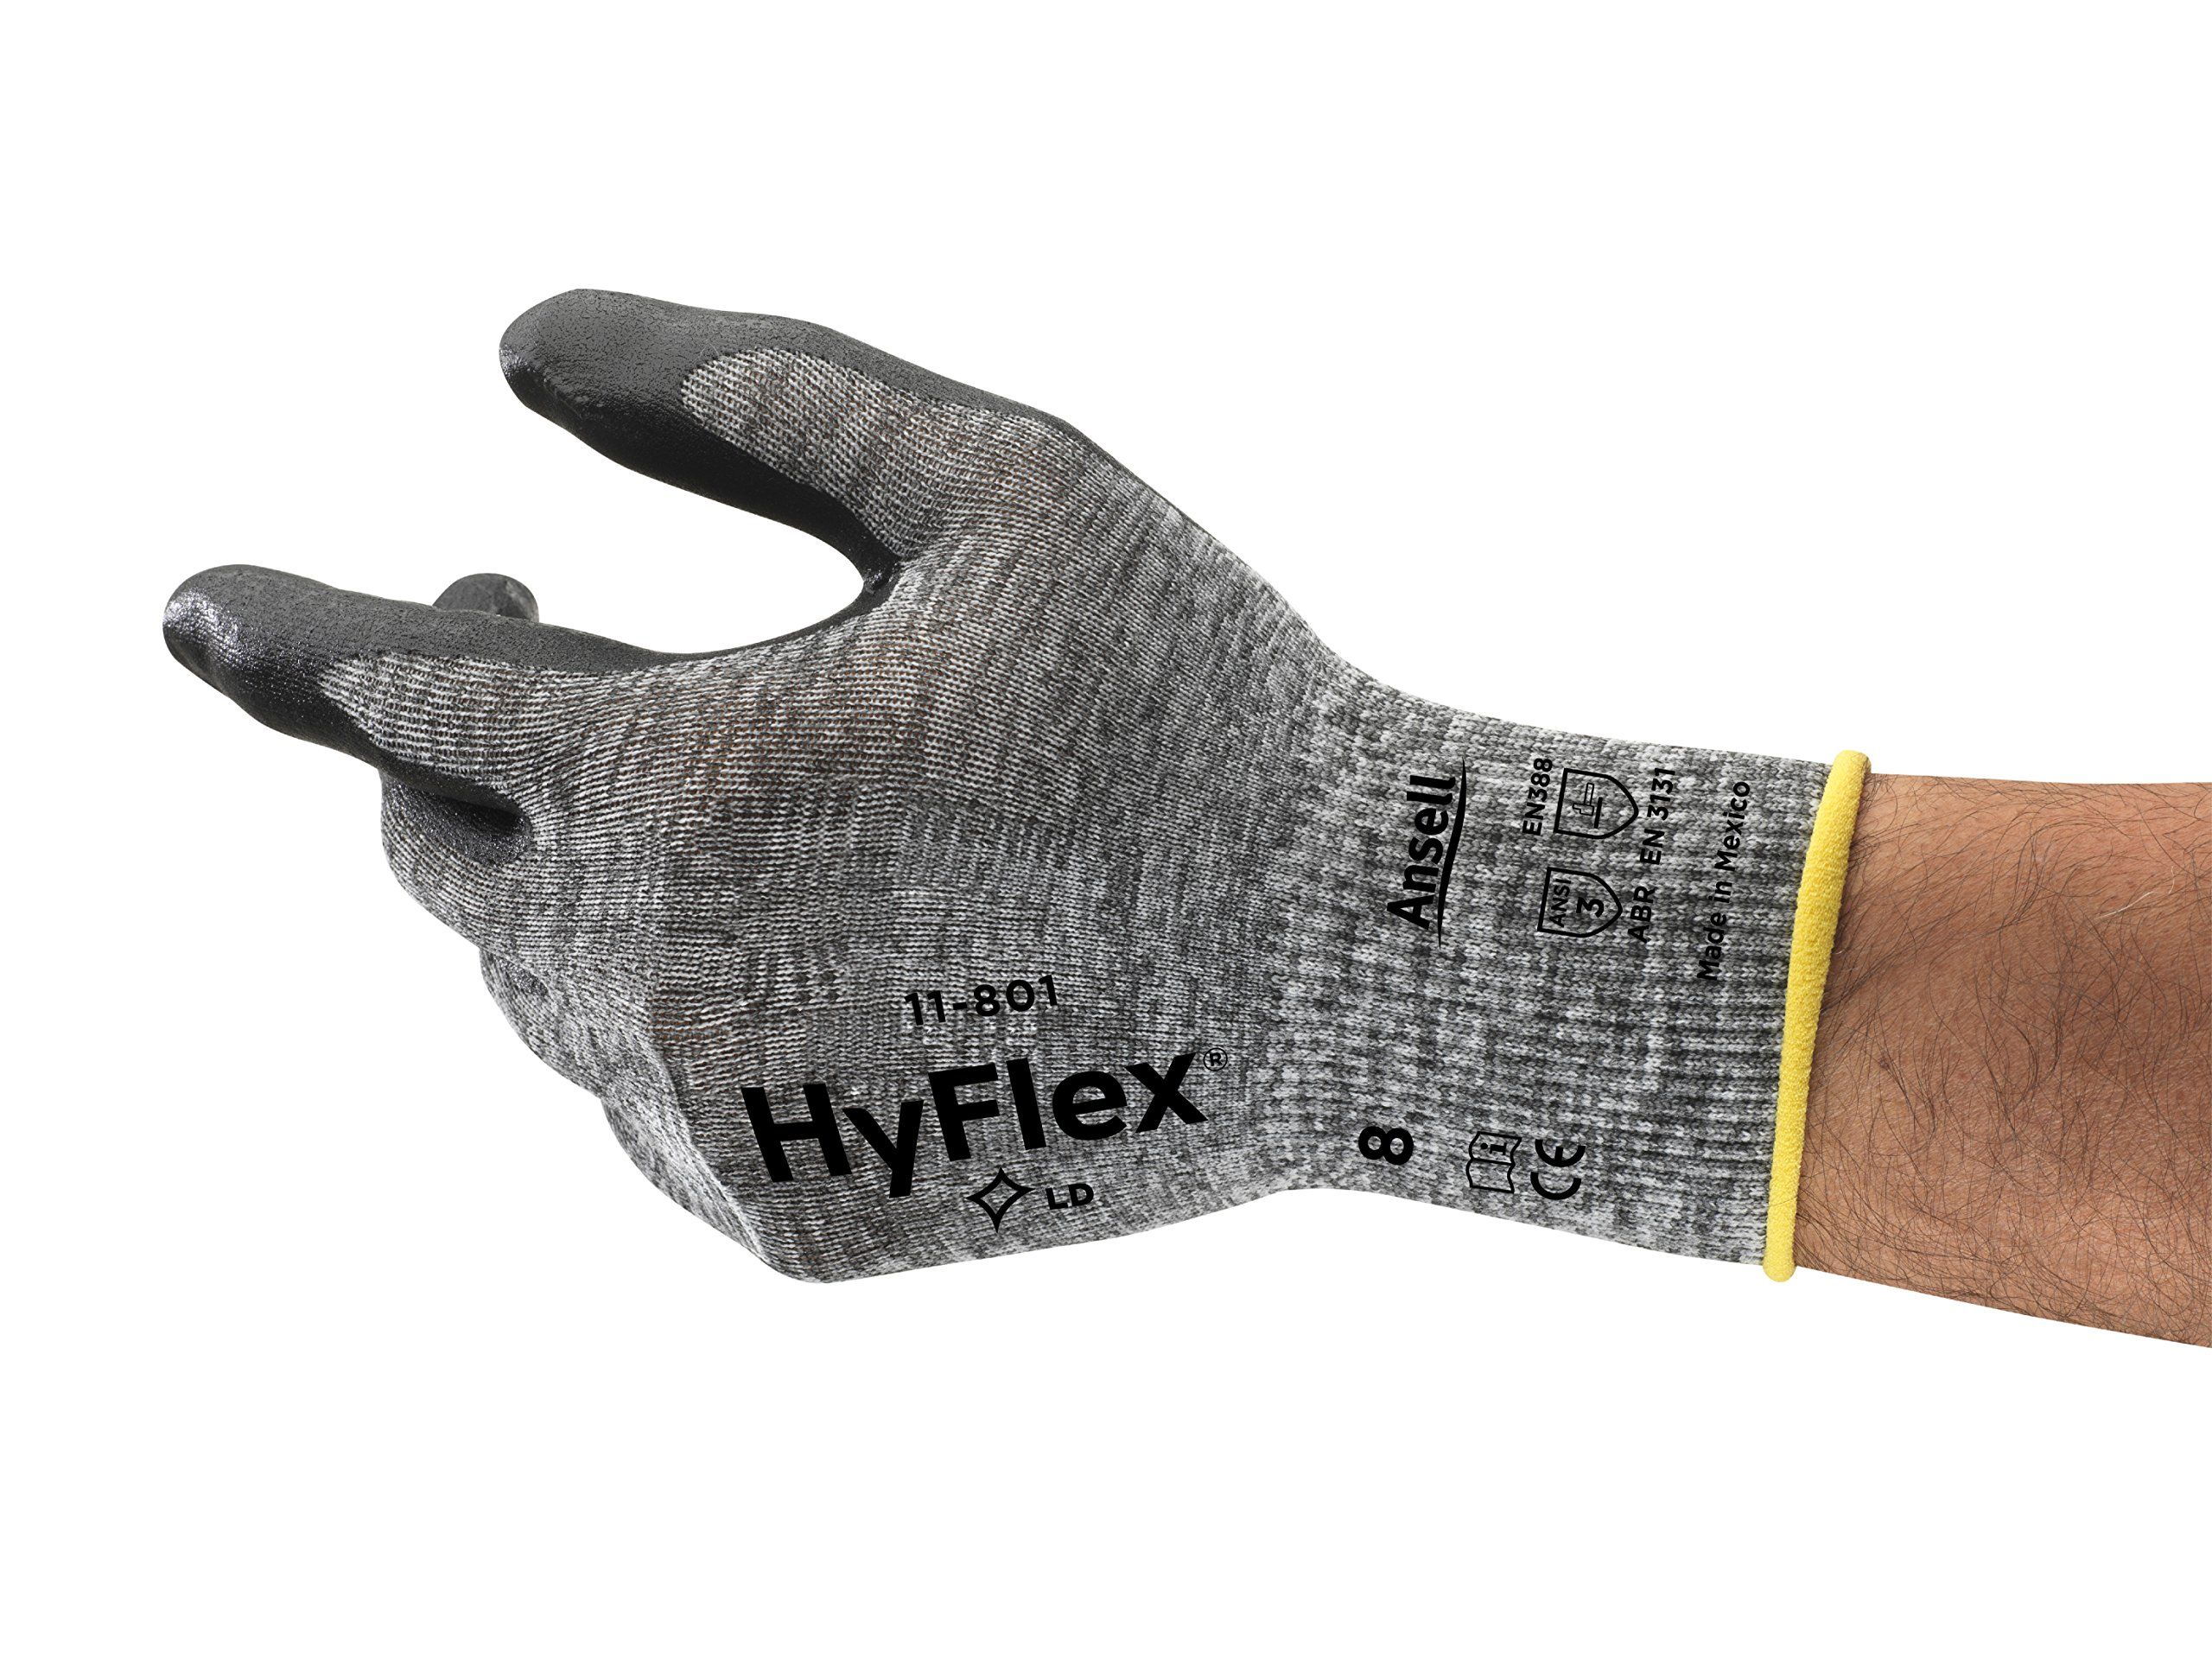 HyFlex 11-801 Multipurpose Gloves - Lightweight, Grip and Comfort, Size Large (Pack of 12)